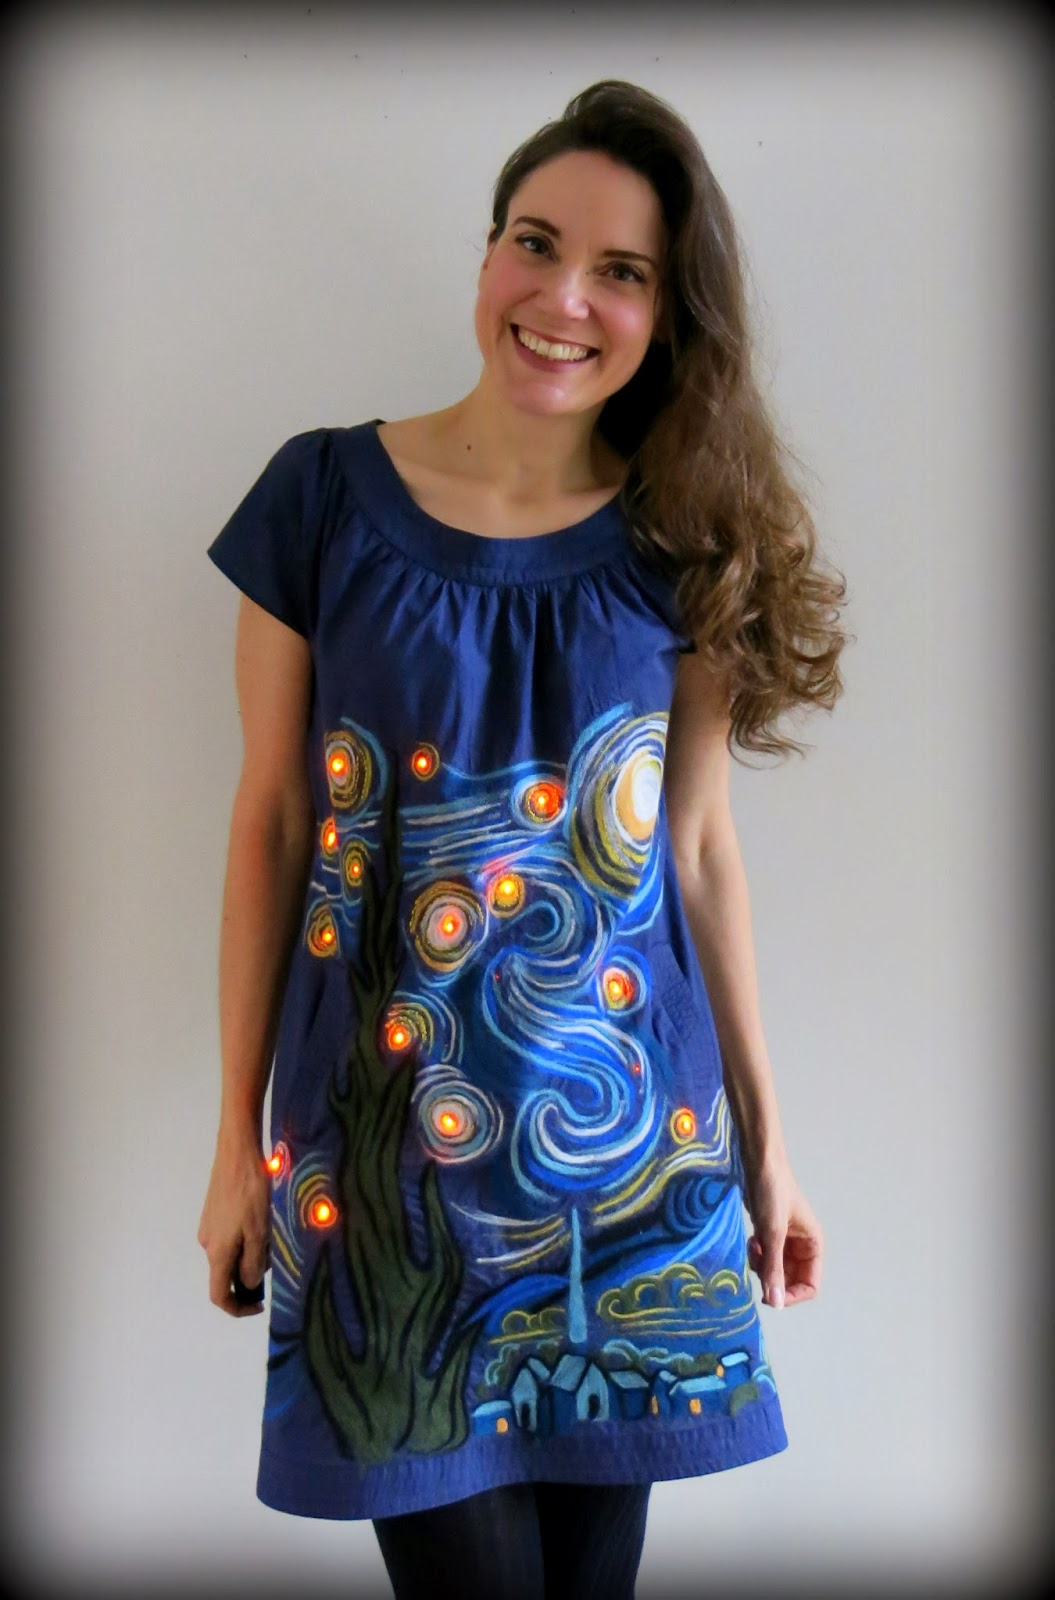 Cassie Stephens: DIY: A Felted, Light-Up Starry Night Dress!